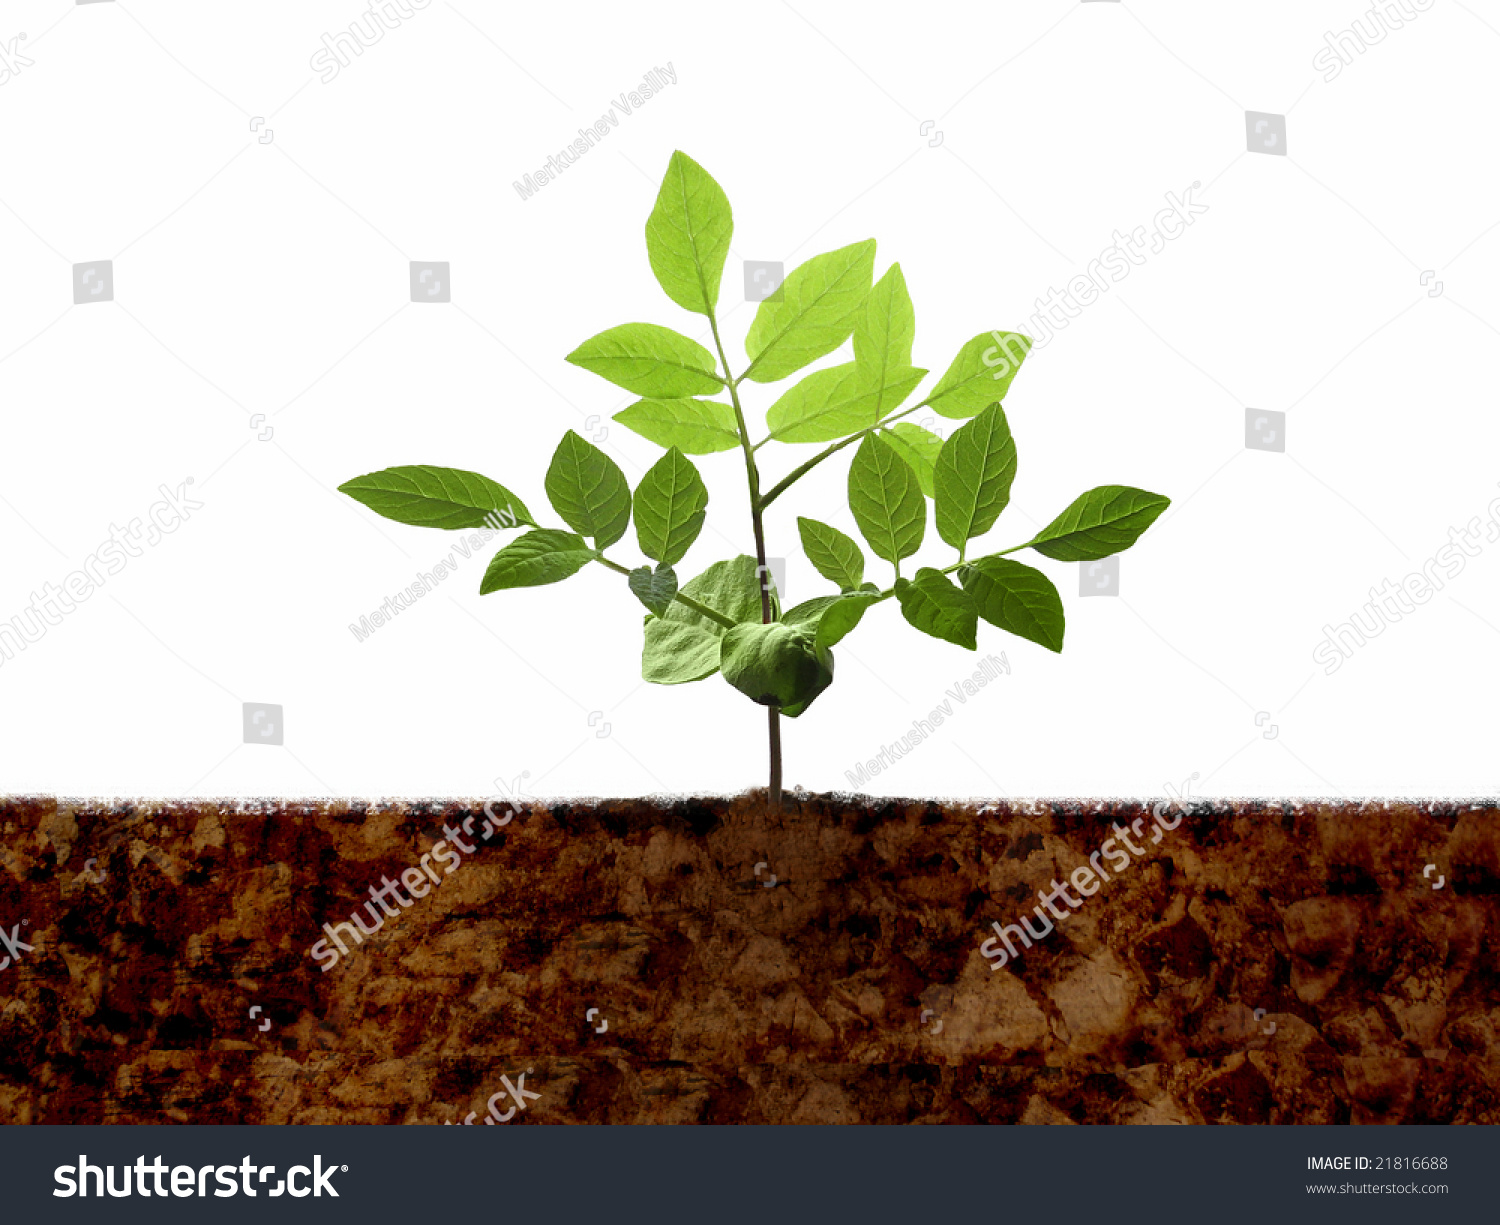 Green young plant shoot soil isolated stock photo for Soil young s modulus